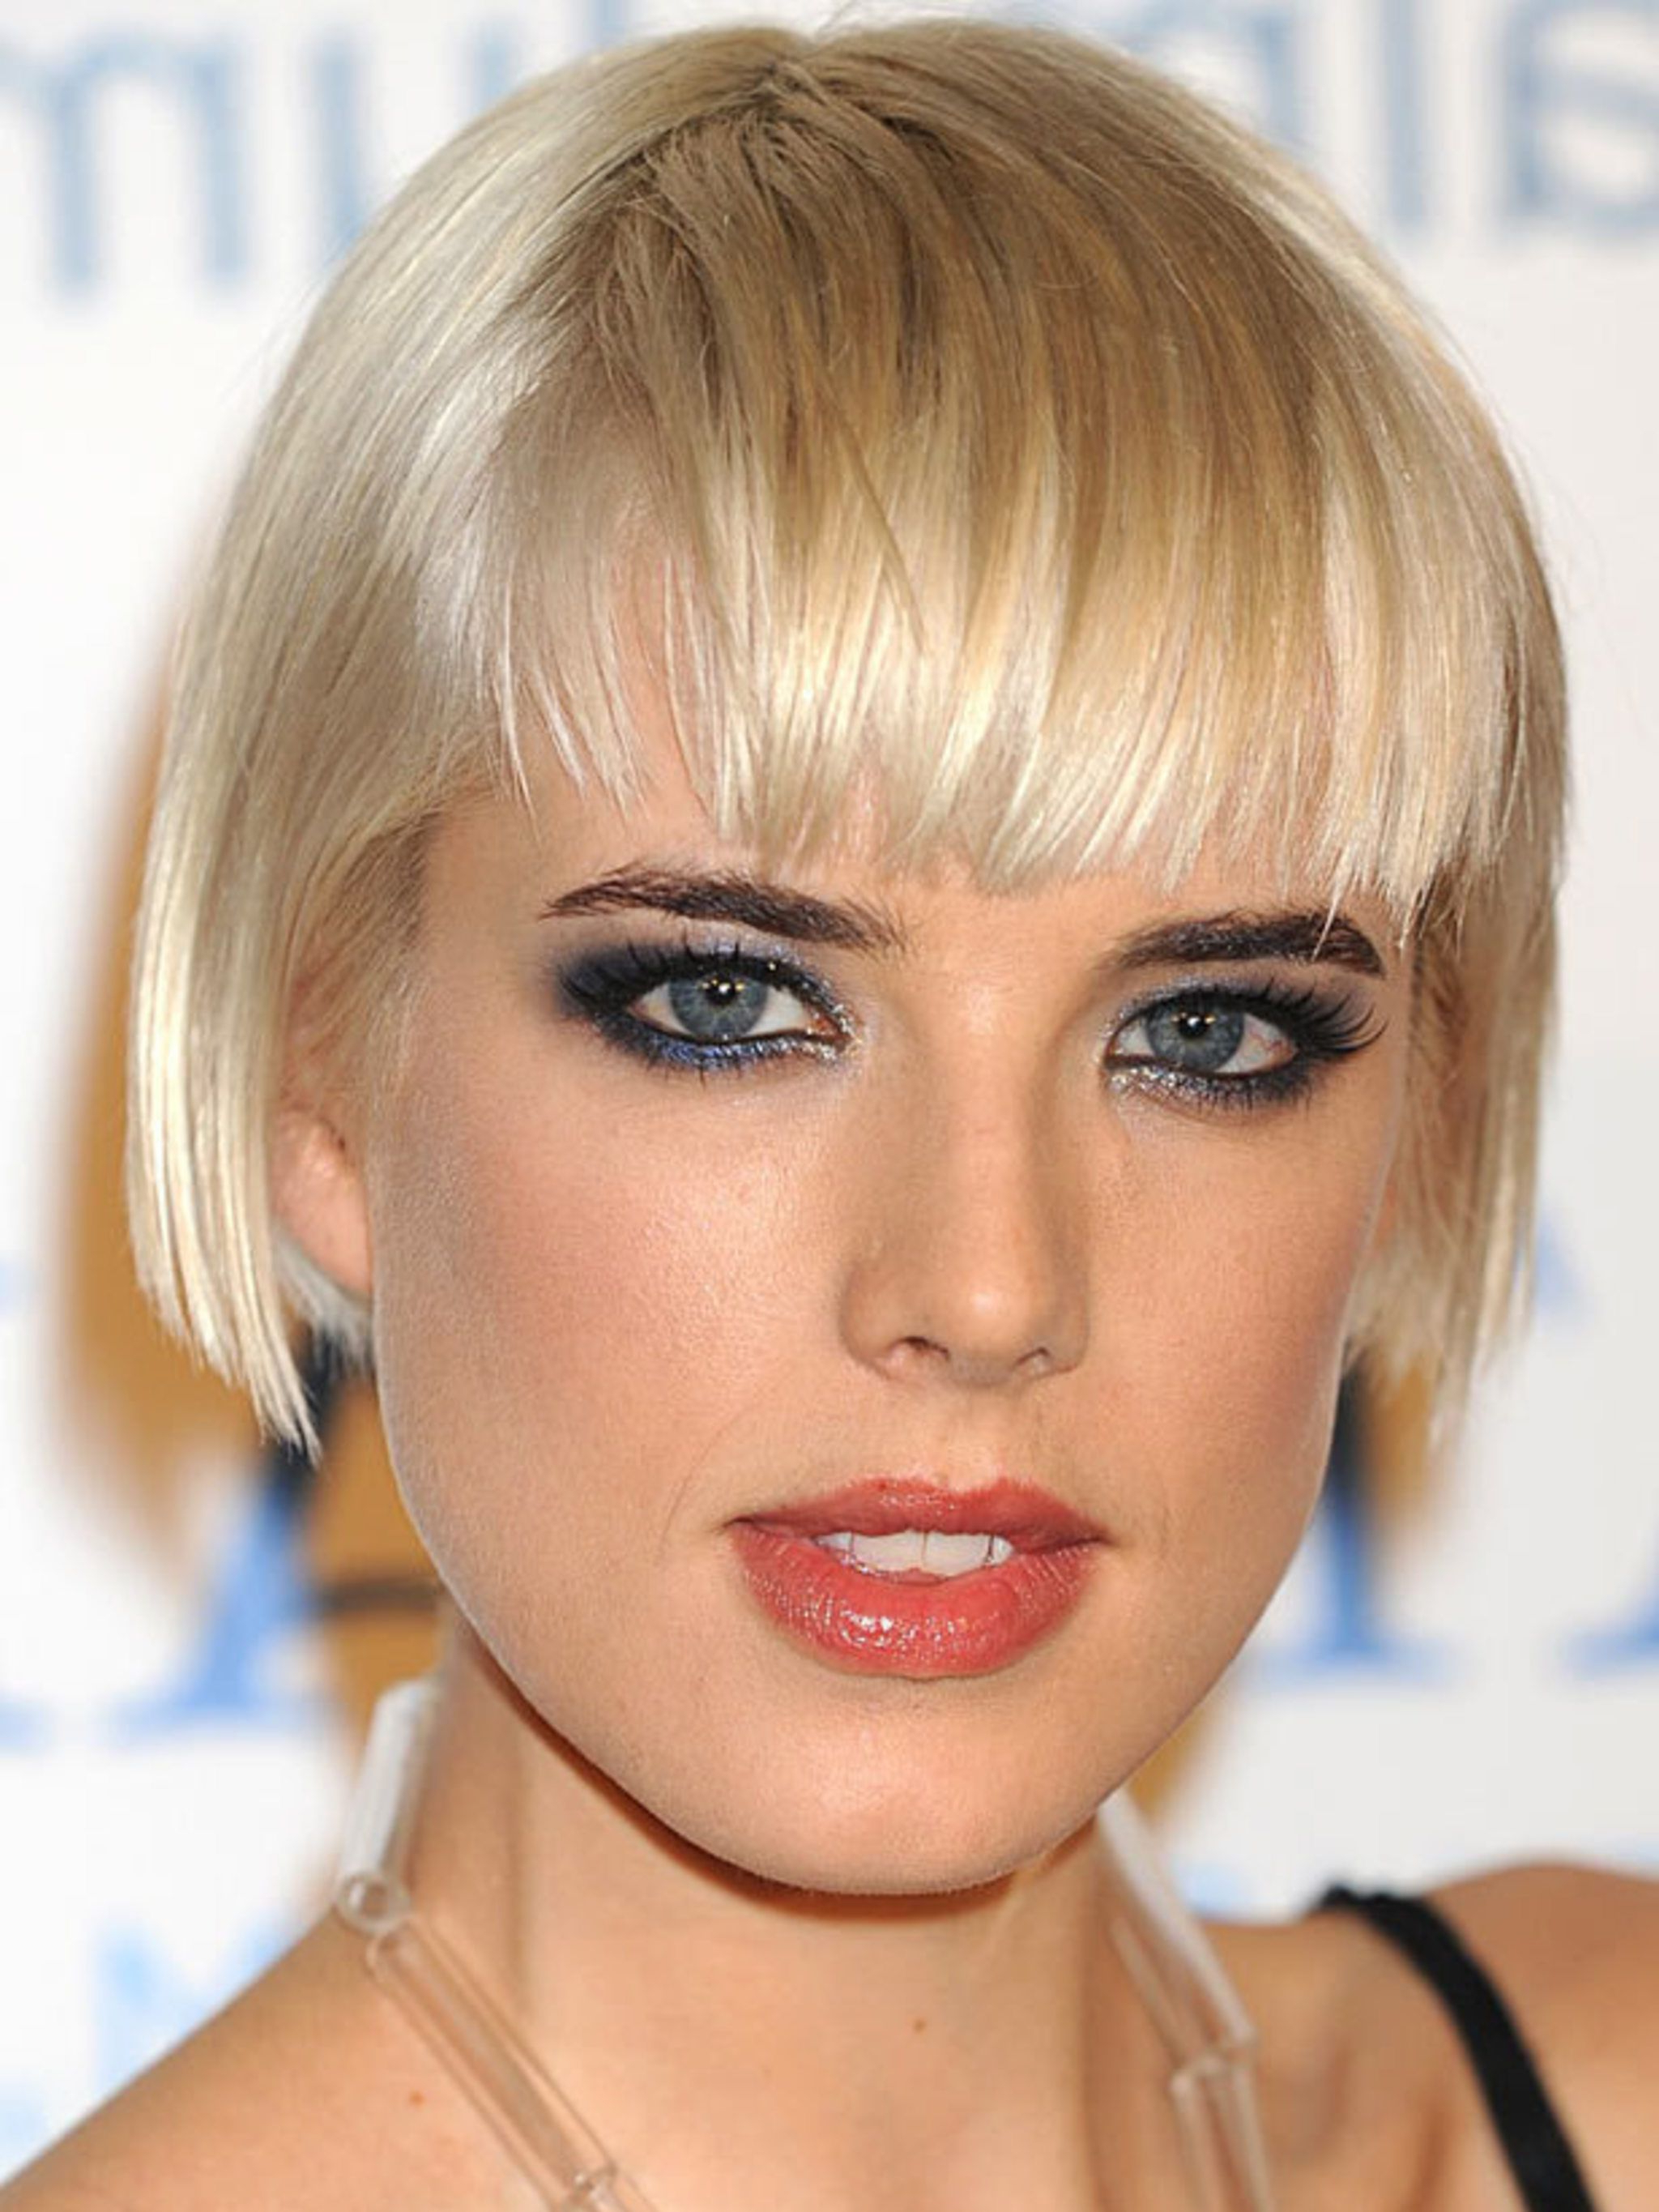 Famous Sleek Bob Hairstyles With Cropped Jagged Bangs Inside 44 Bob Hairstyles For 2019 – Bob Haircuts To Copy This Year (View 12 of 20)